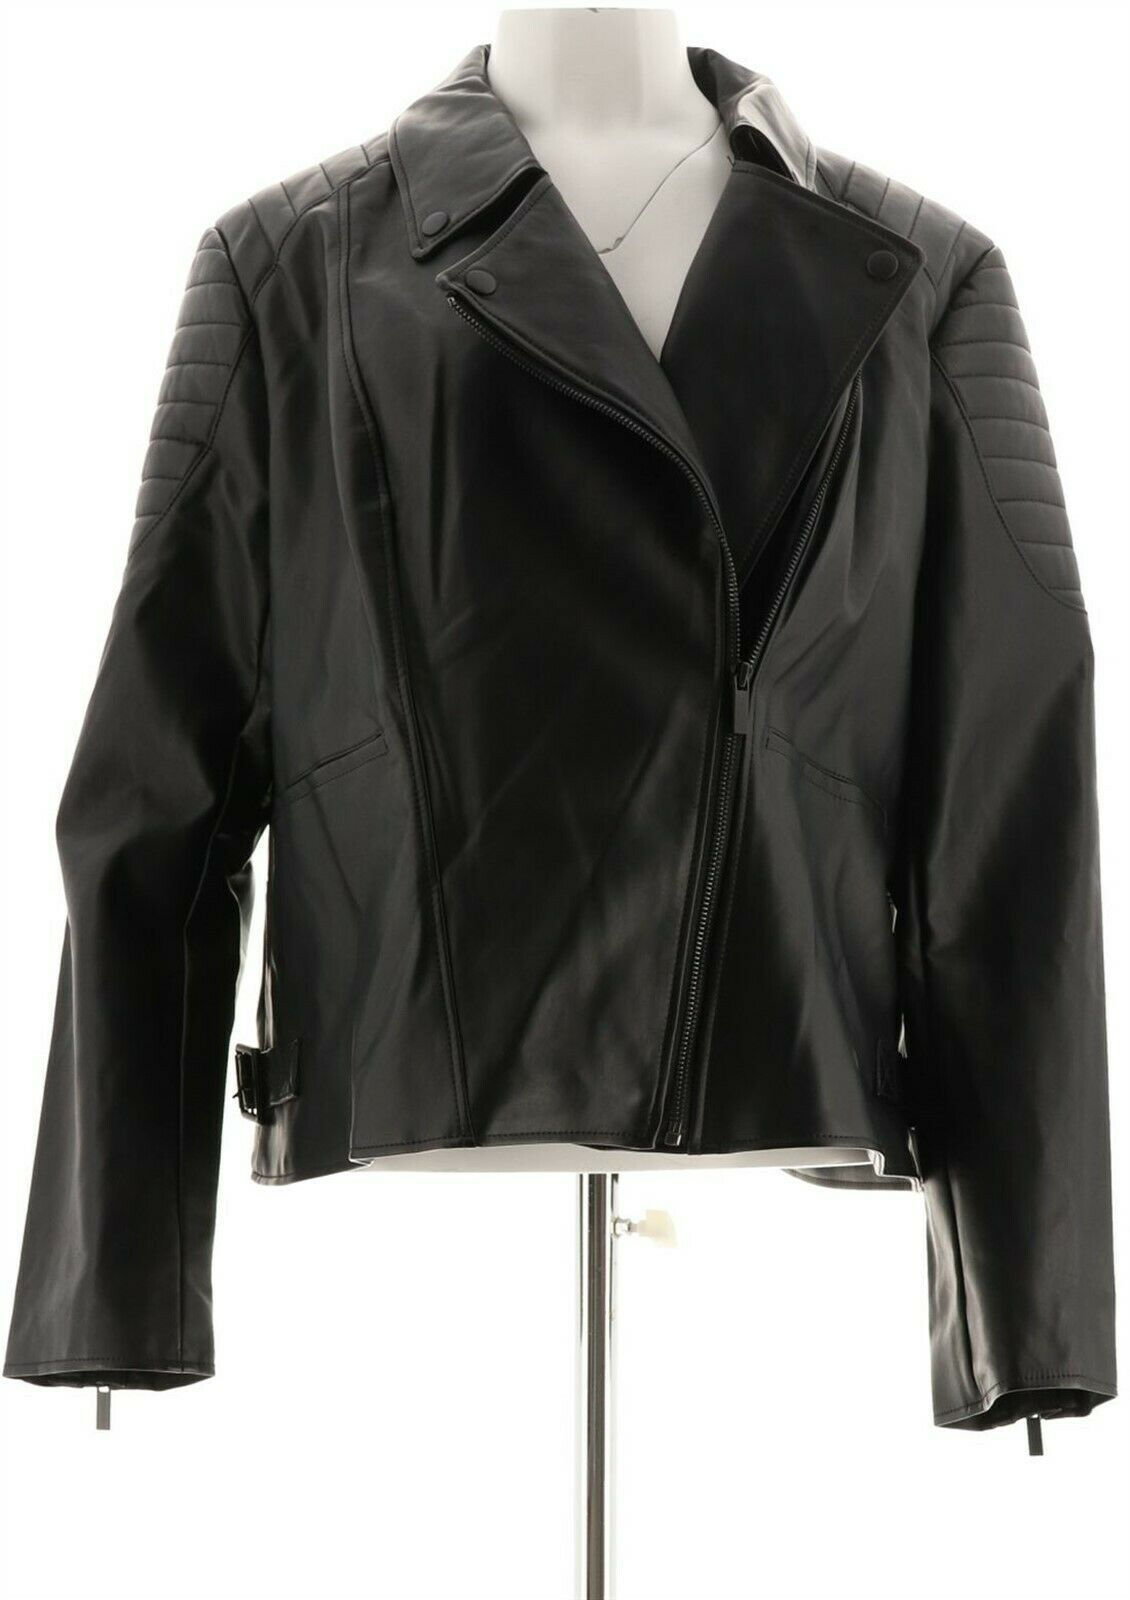 Primary image for Lisa Rinna Collection Faux Leather Motorcycle Jacket Black 2X NEW A285571